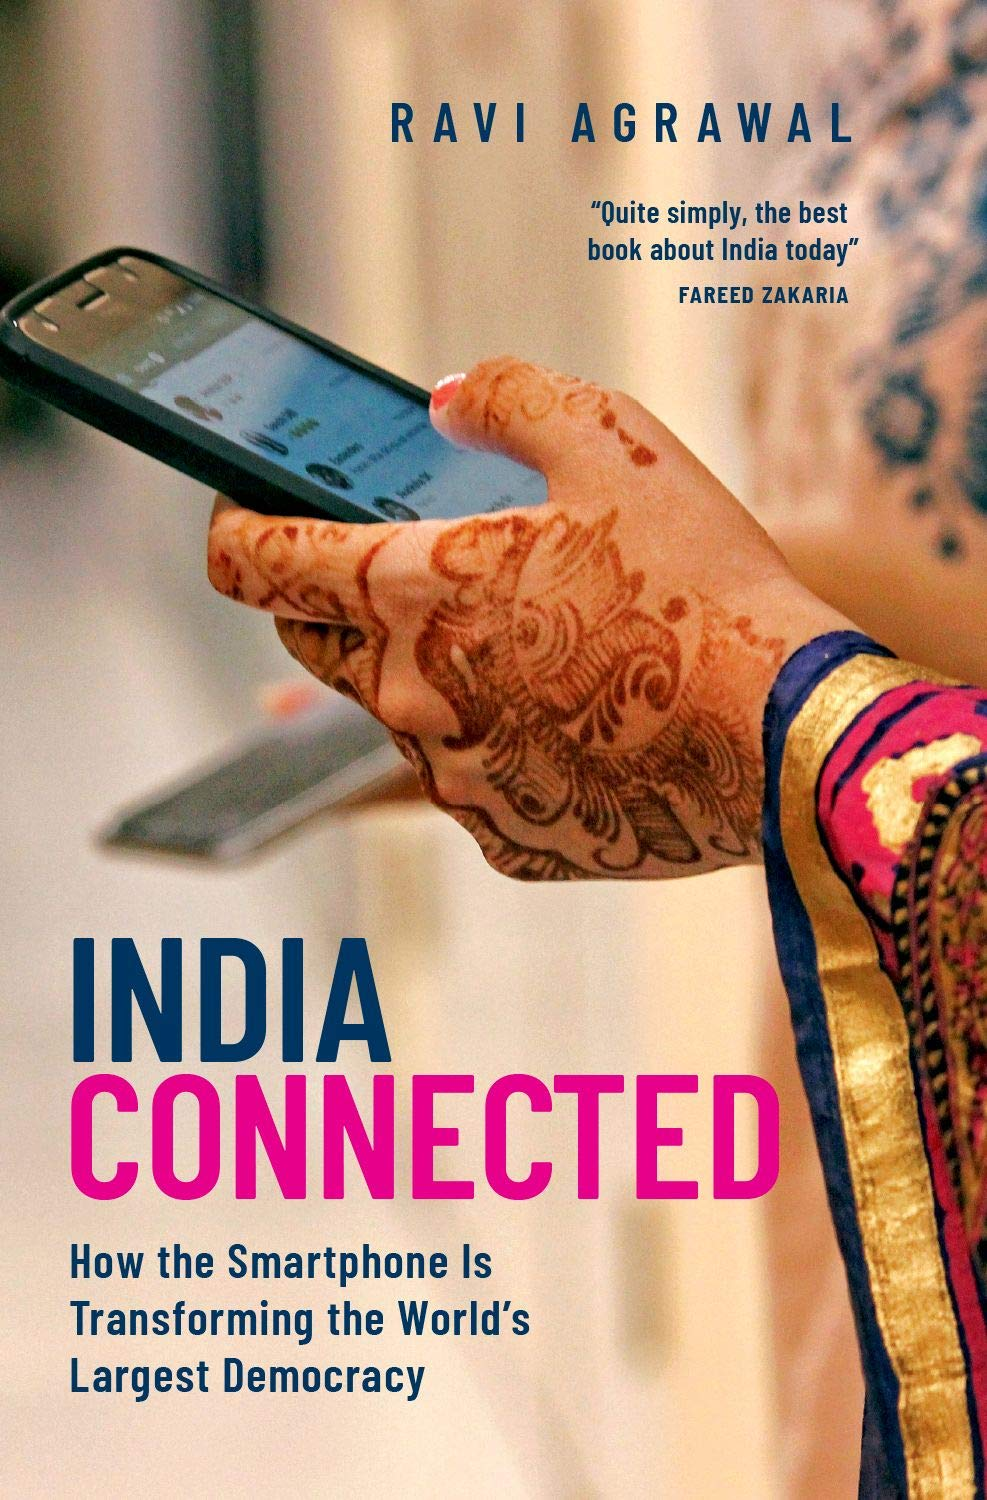 Amazon.com: India Connected: How the Smartphone is Transforming the World's  Largest Democracy (9780190858650): Agrawal, Ravi: Books